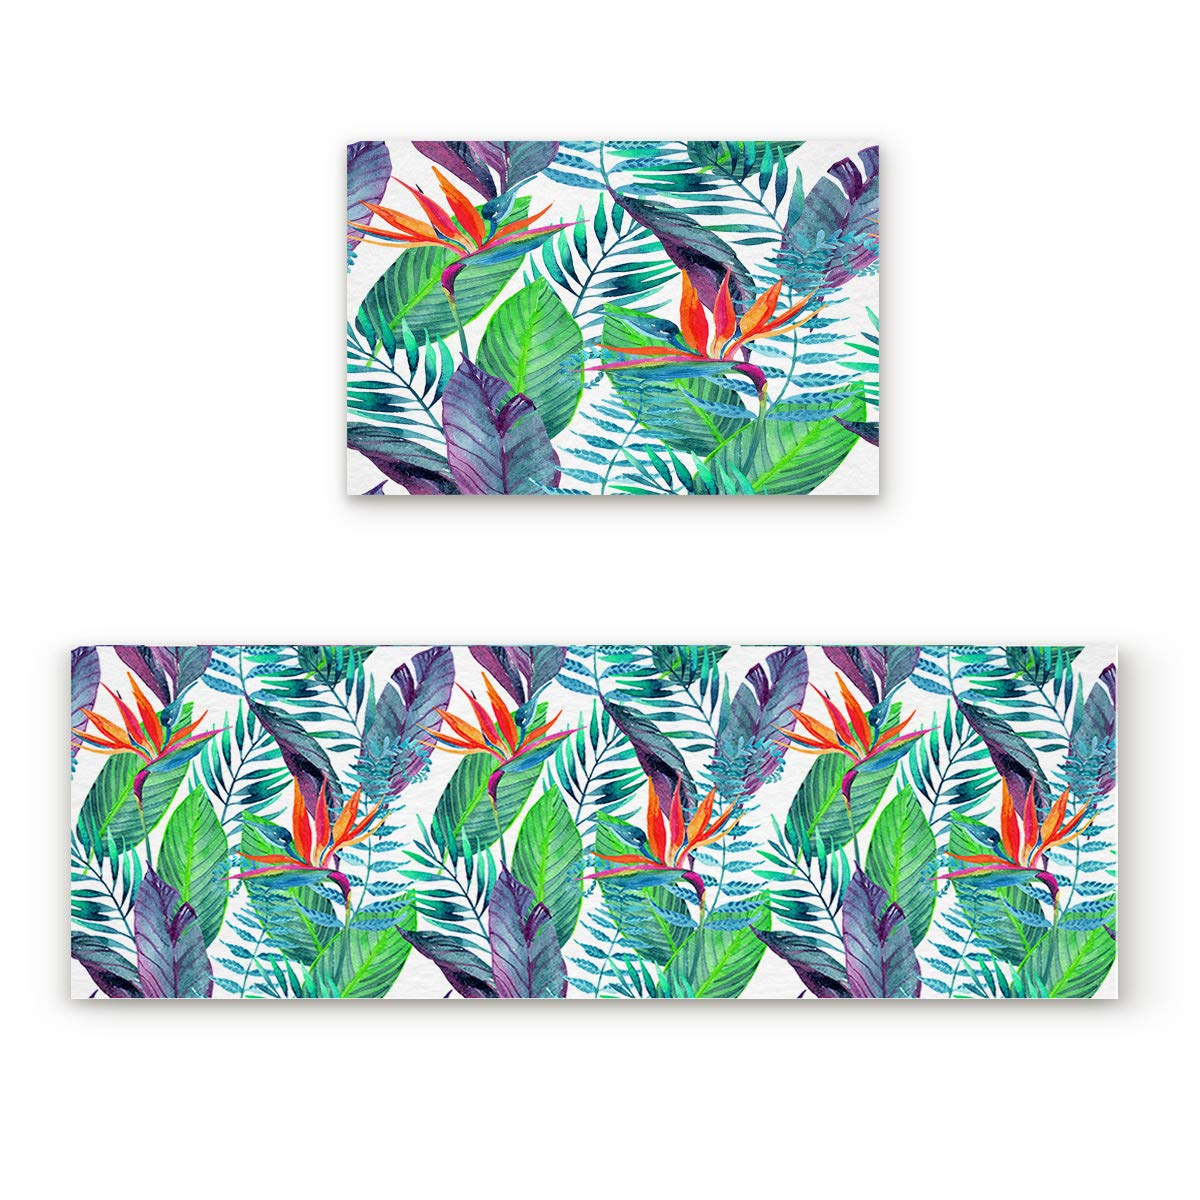 Tropical Forestsoa9193 23.6\ 2 Pieces Kitchen Rug Set,Non-Skid Slip Washable Doormat Floor Runner Bathroom Area Rug Carpet,Tropical Leaves Summer Watercolor Hand Drawn Style (23.6x35.4in+23.6x70.9 inches)